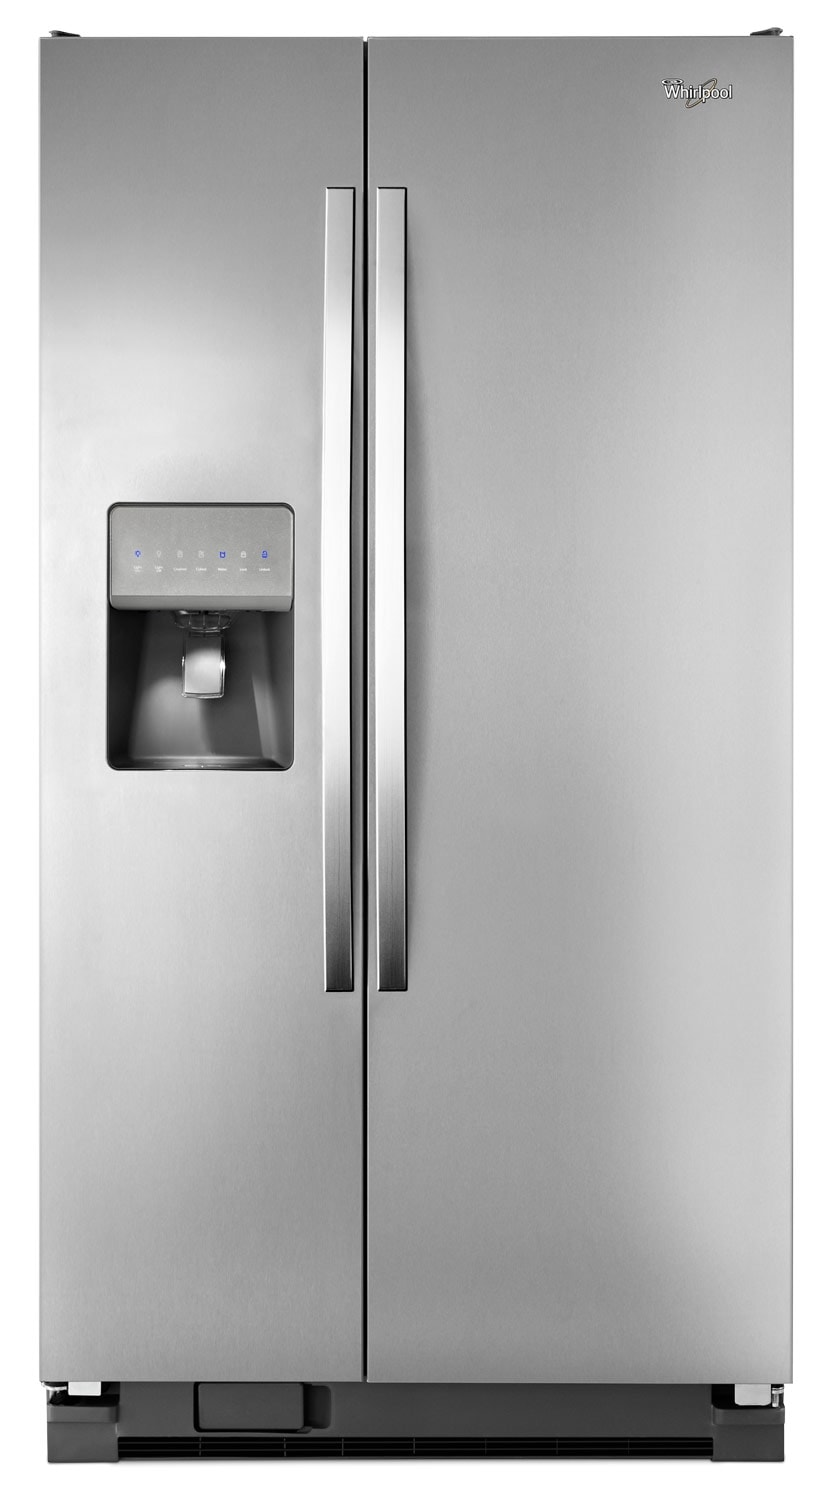 Whirlpool Stainless Steel Side-by-Side Refrigerator (24.5 Cu. Ft.) - WRS335FDDM